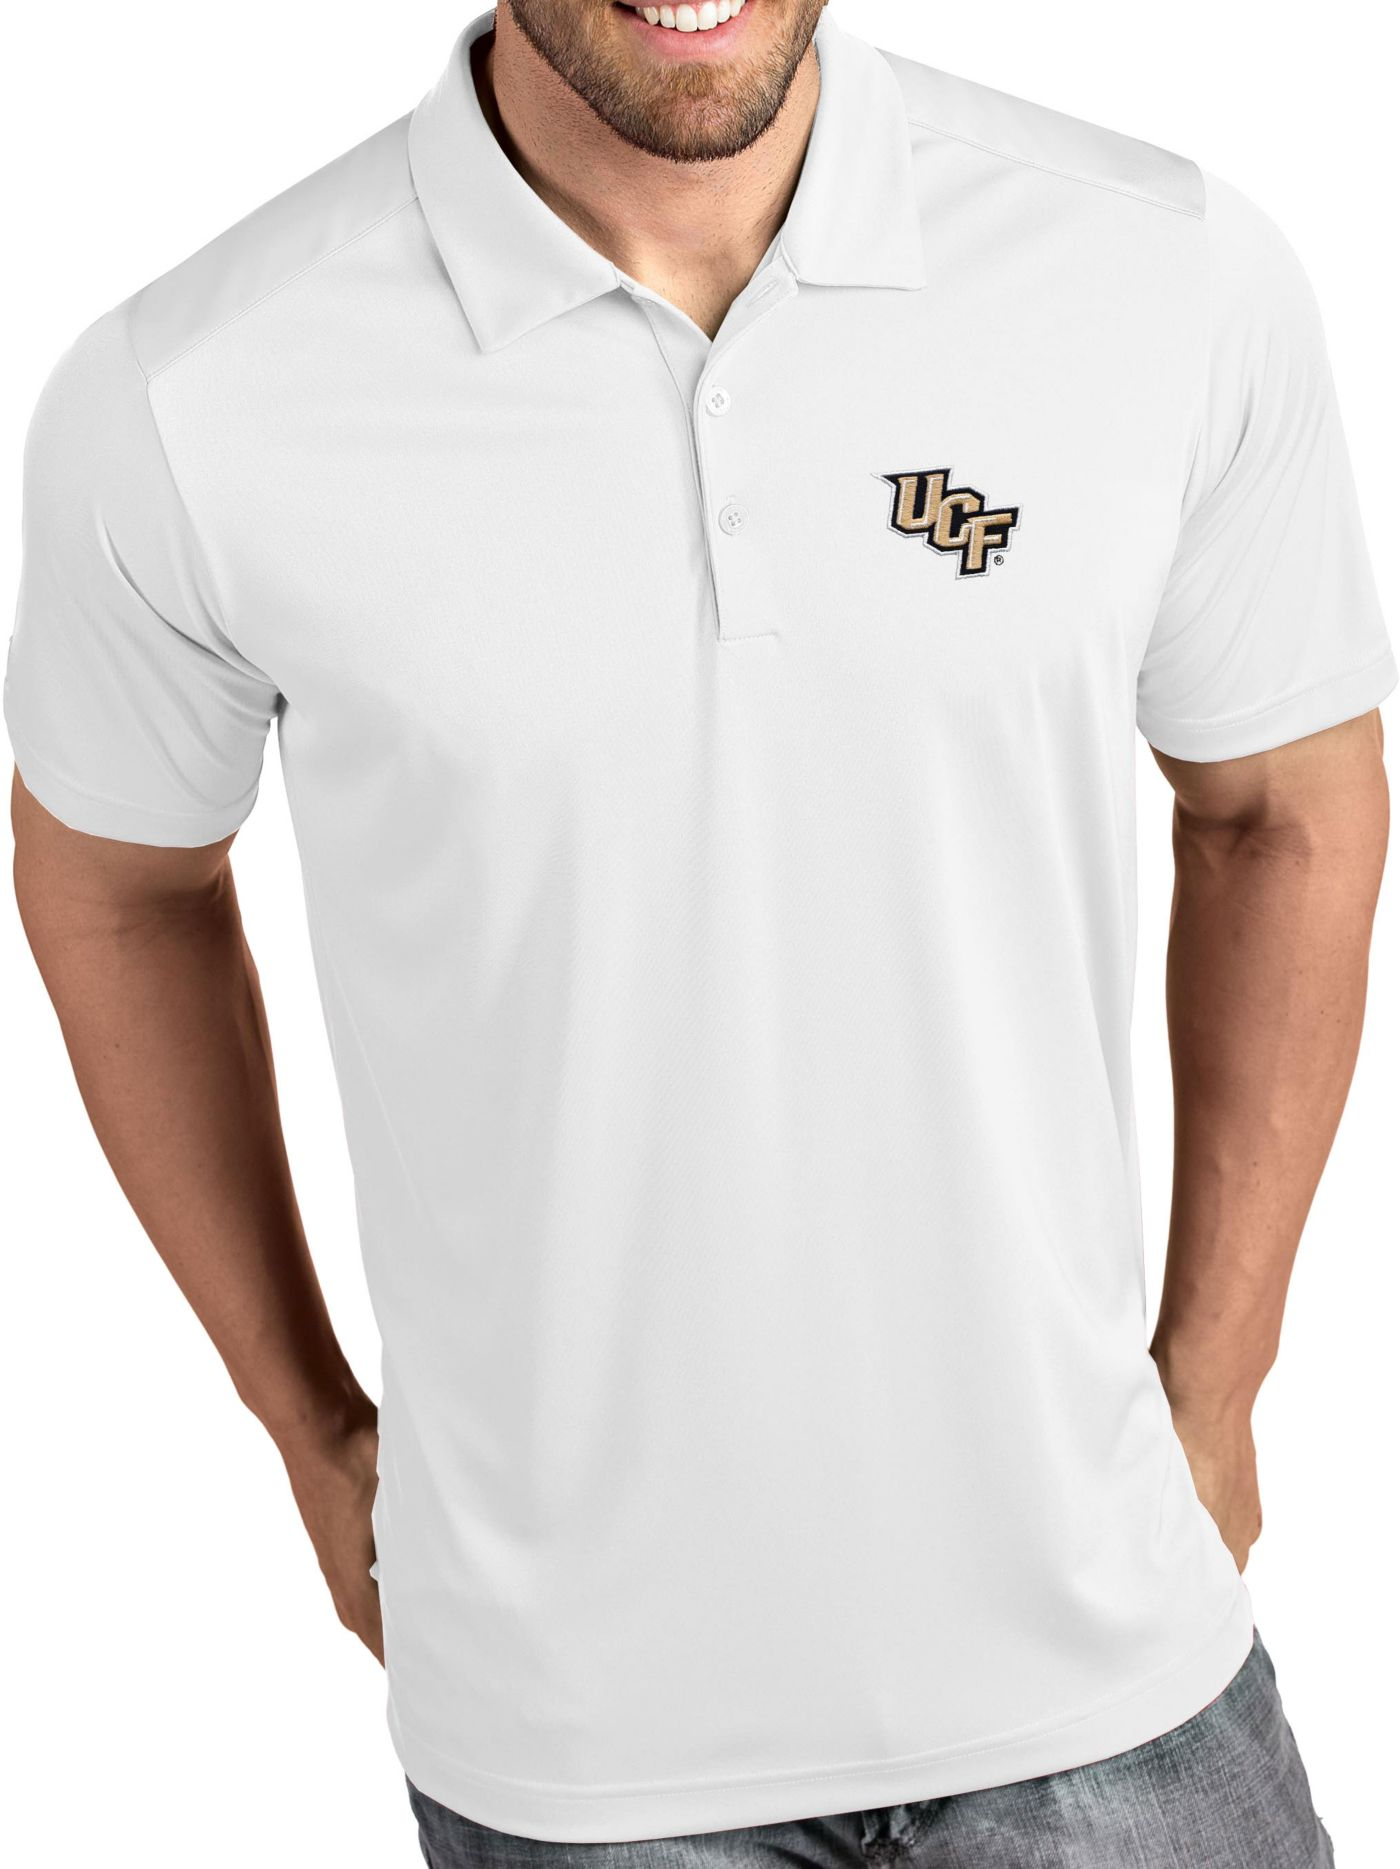 Antigua Men's UCF Knights Tribute Performance White Polo